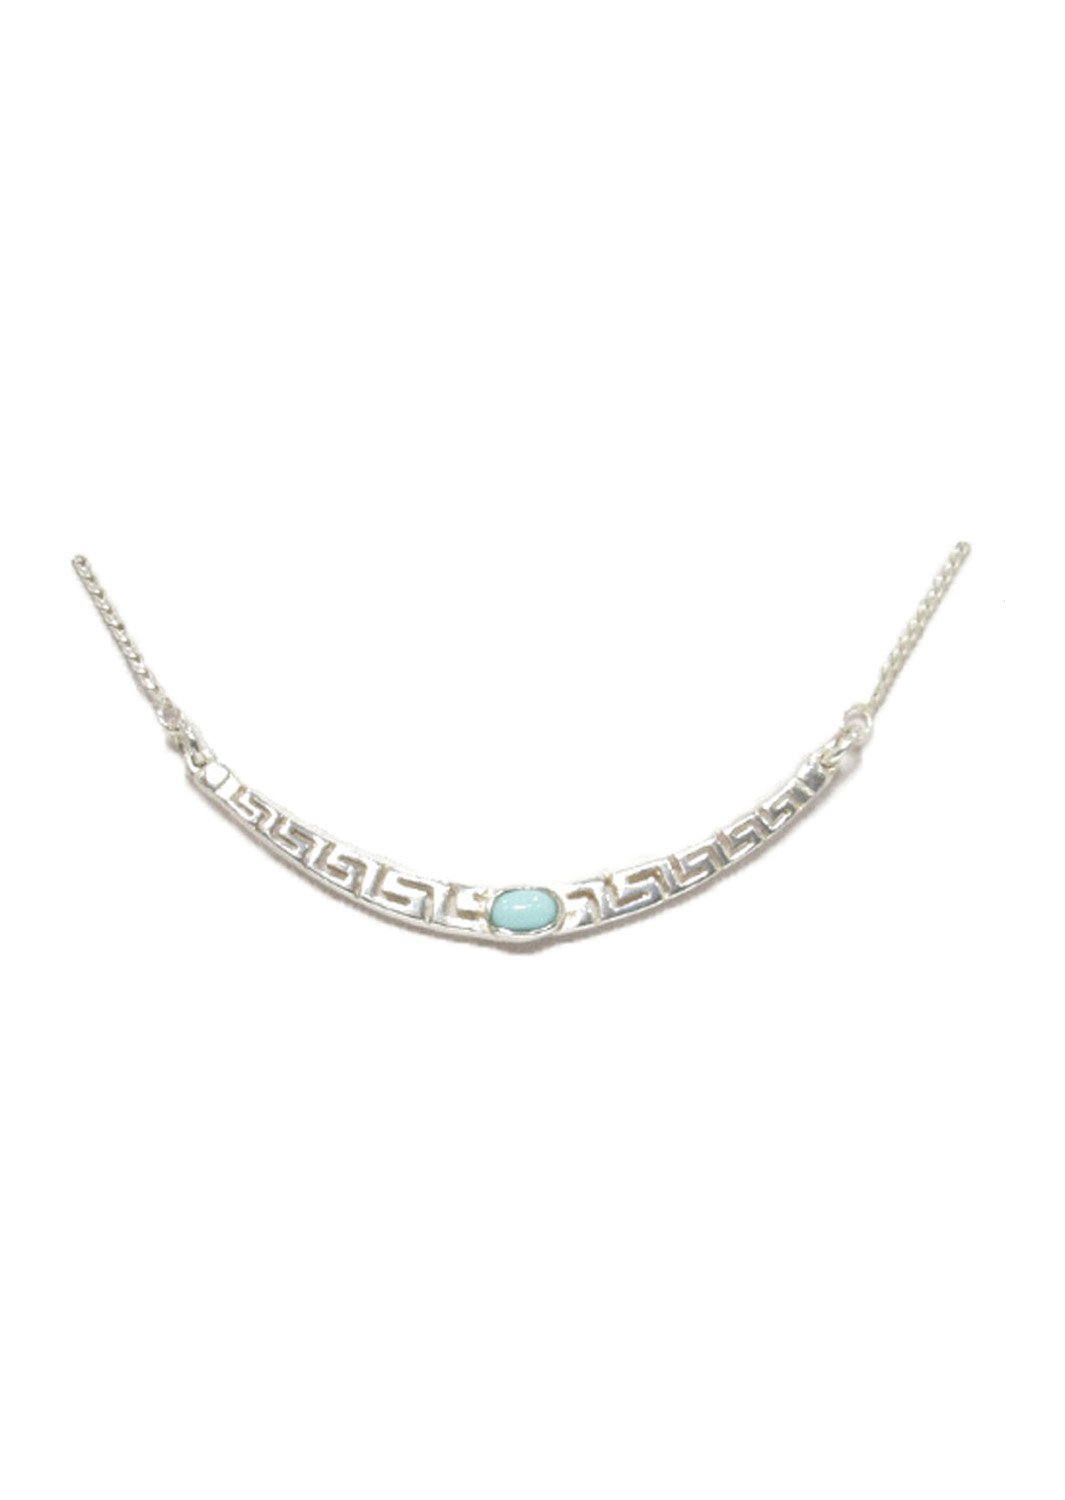 Greek key design - meander silver necklace with turquoise